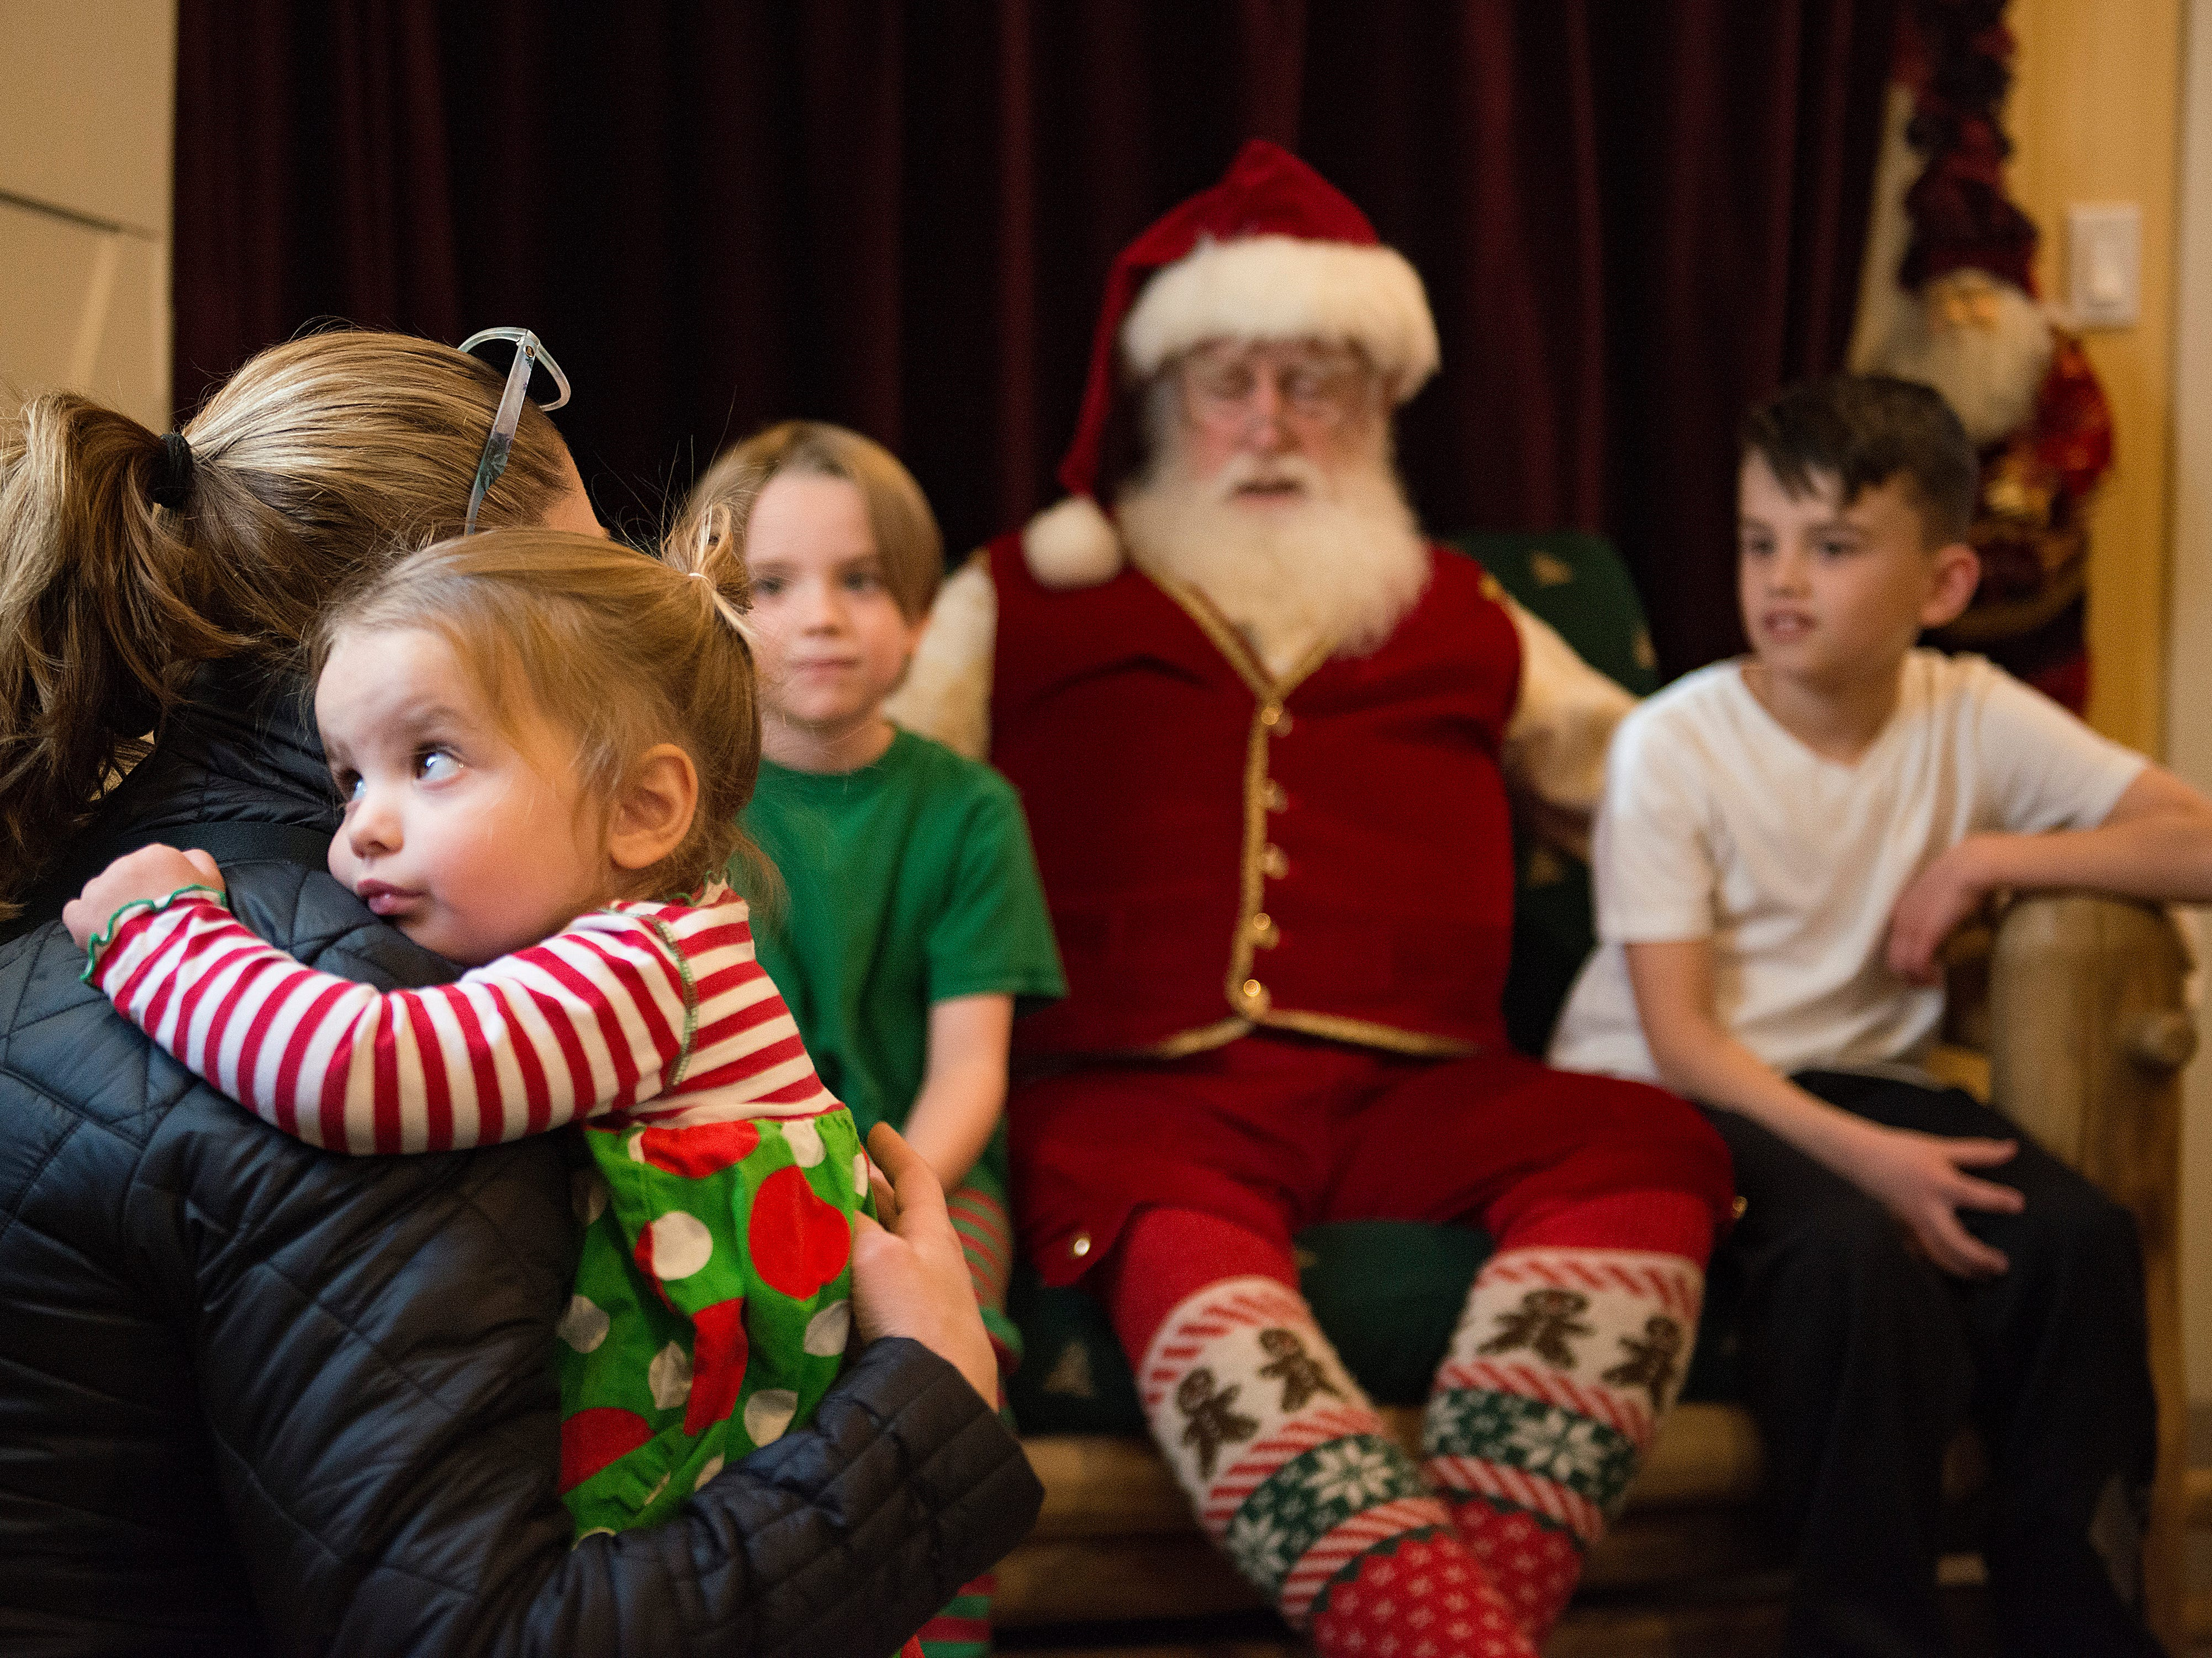 Caroline Housley, 2, holds onto her mother, Kristi, as she visits Rick Price portraying Santa Claus with her brothers Graham and Grady in Old Town Square on Thursday, December 13, 2018.